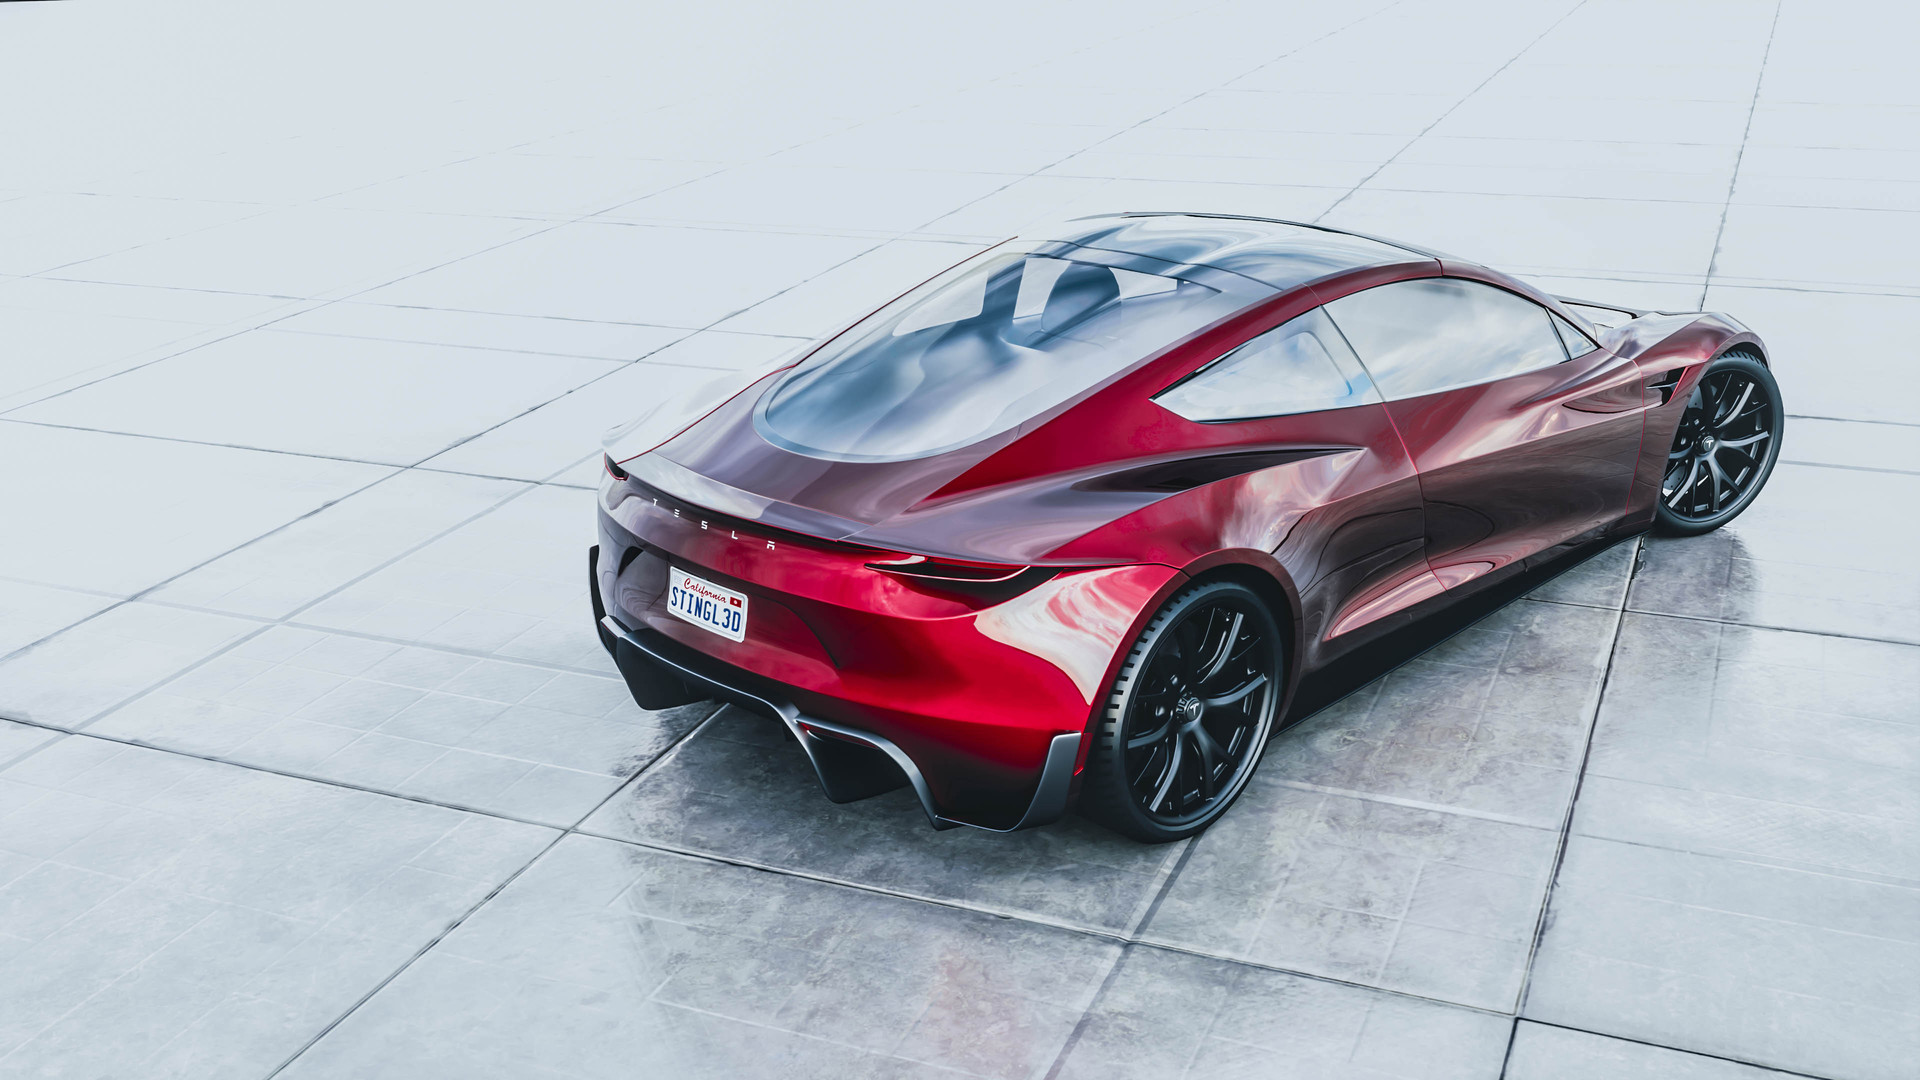 David stingl tesla roadster 2020 back1 2